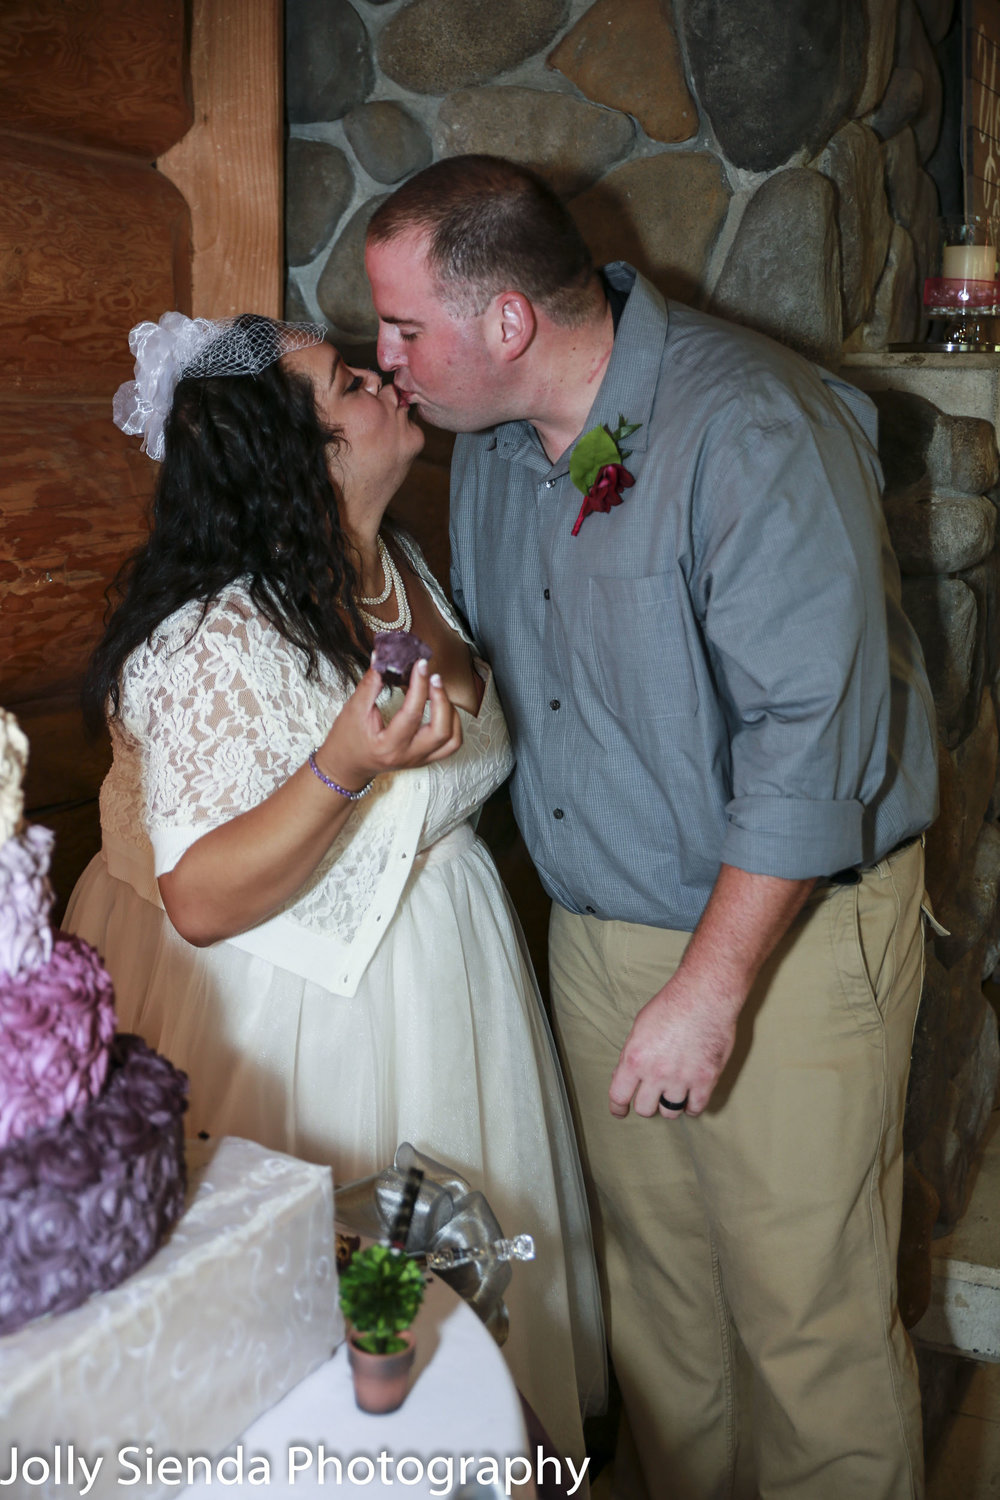 Nieves and Chad kiss while eating wedding cupcakes